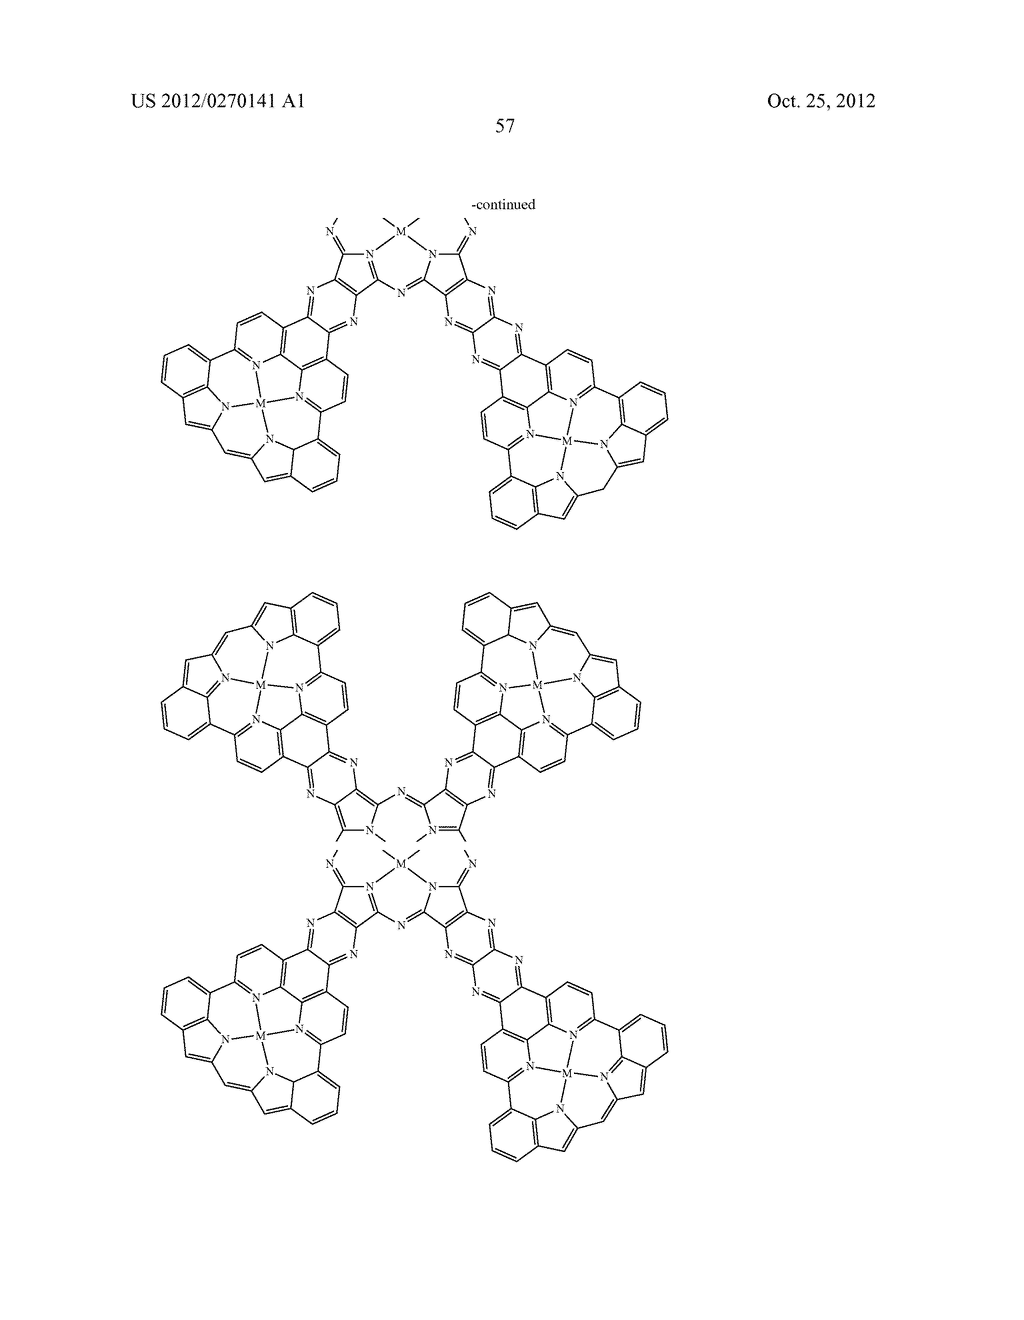 NITROGEN-CONTAINING AROMATIC COMPOUNDS AND METAL COMPLEXES - diagram, schematic, and image 58